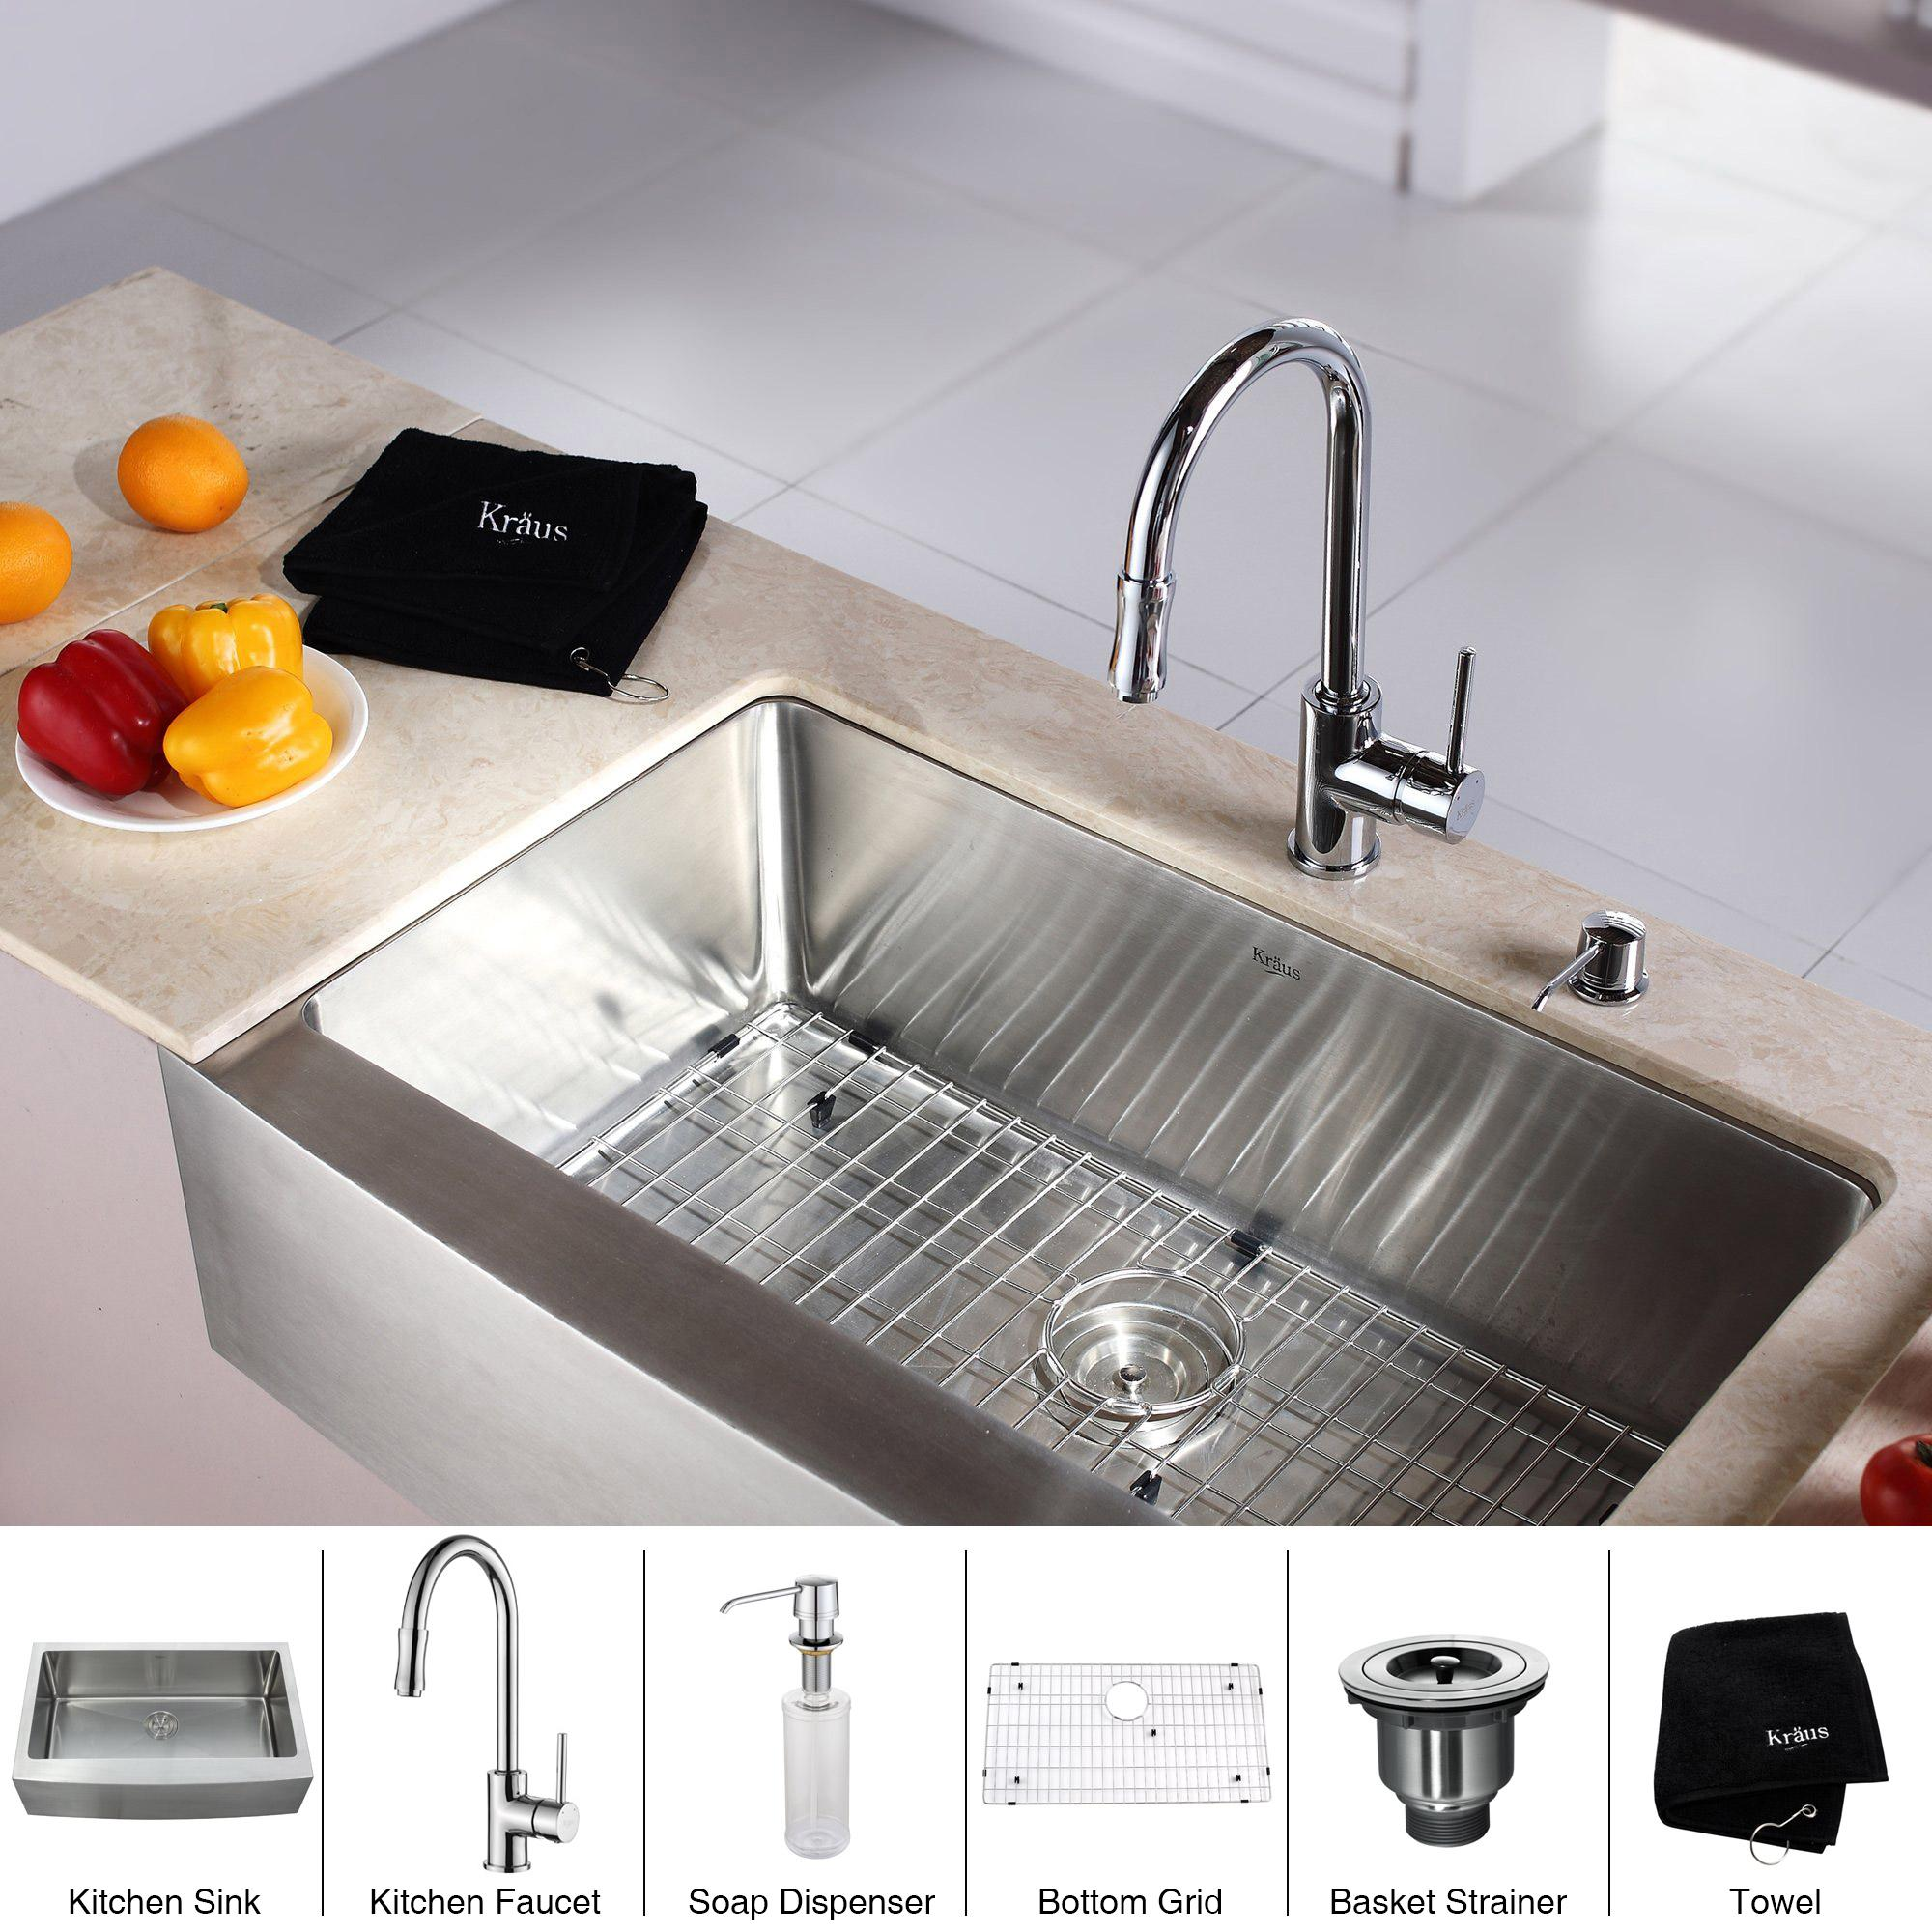 Kraus 33 farmhouse stainless steel kitchen sink chrome faucet soap dispenser ebay - Kitchen sink soap pump ...